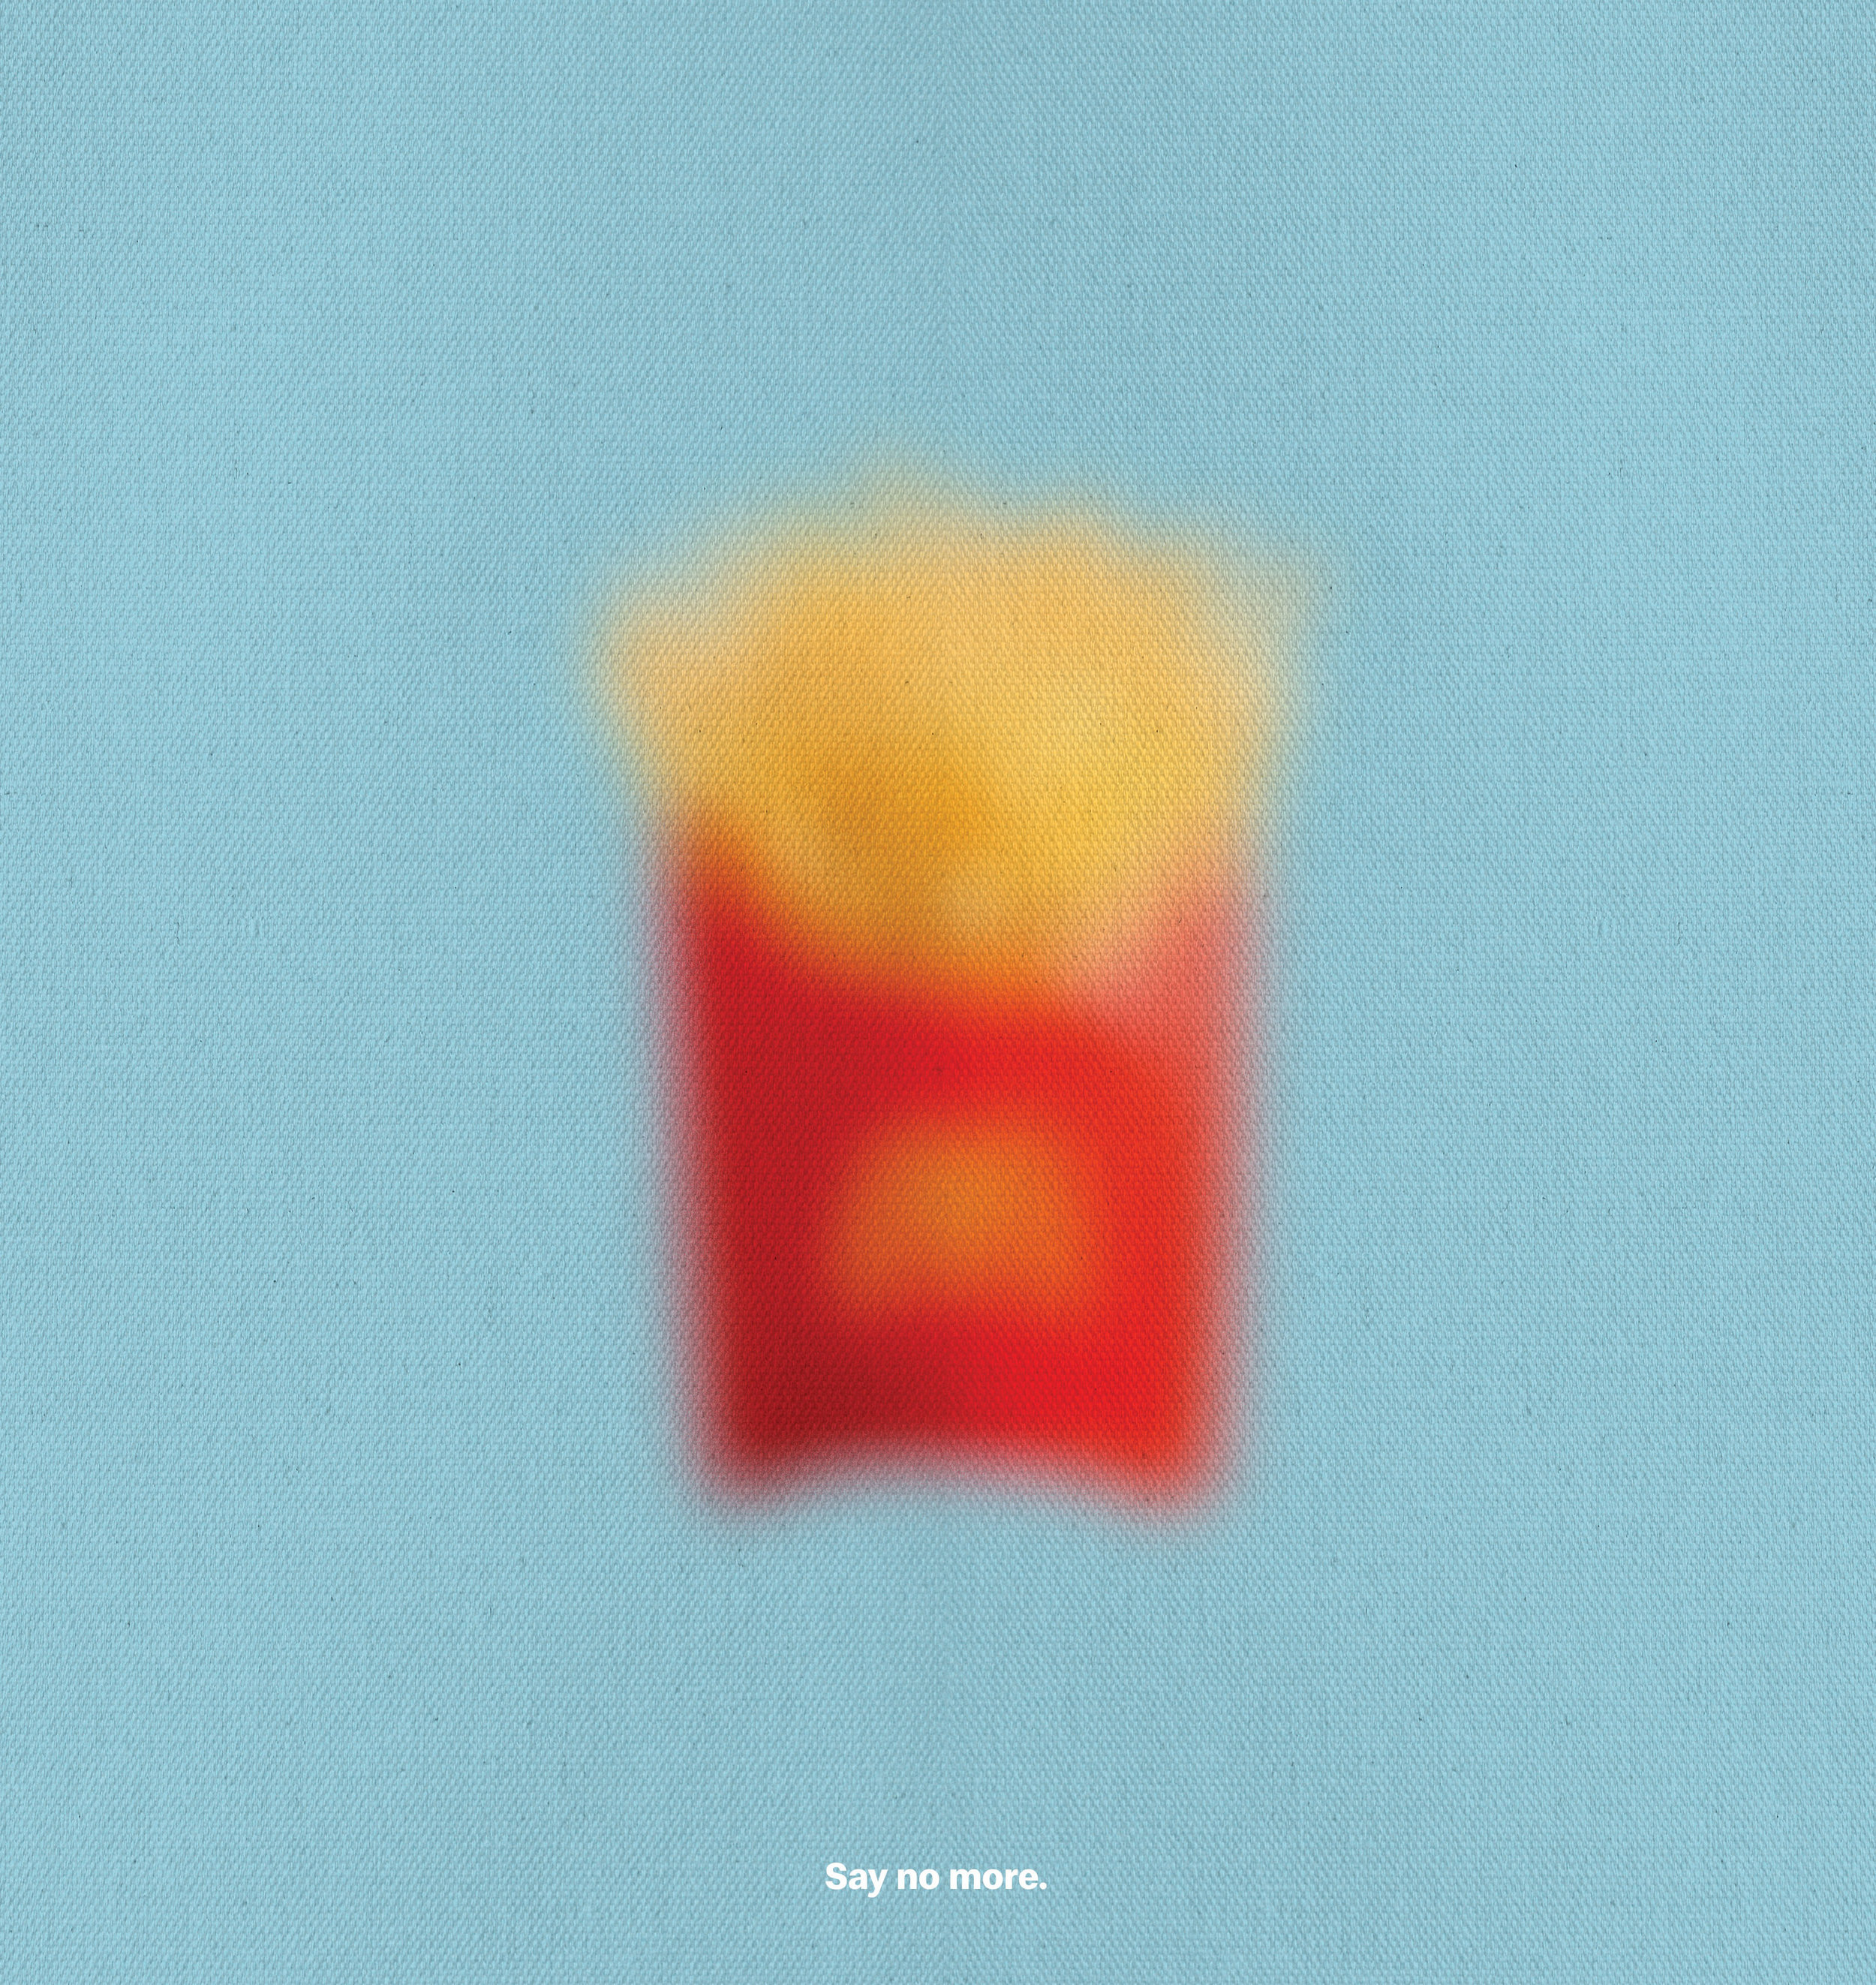 Blurred Icons - Say No More-Fries Print.jpg